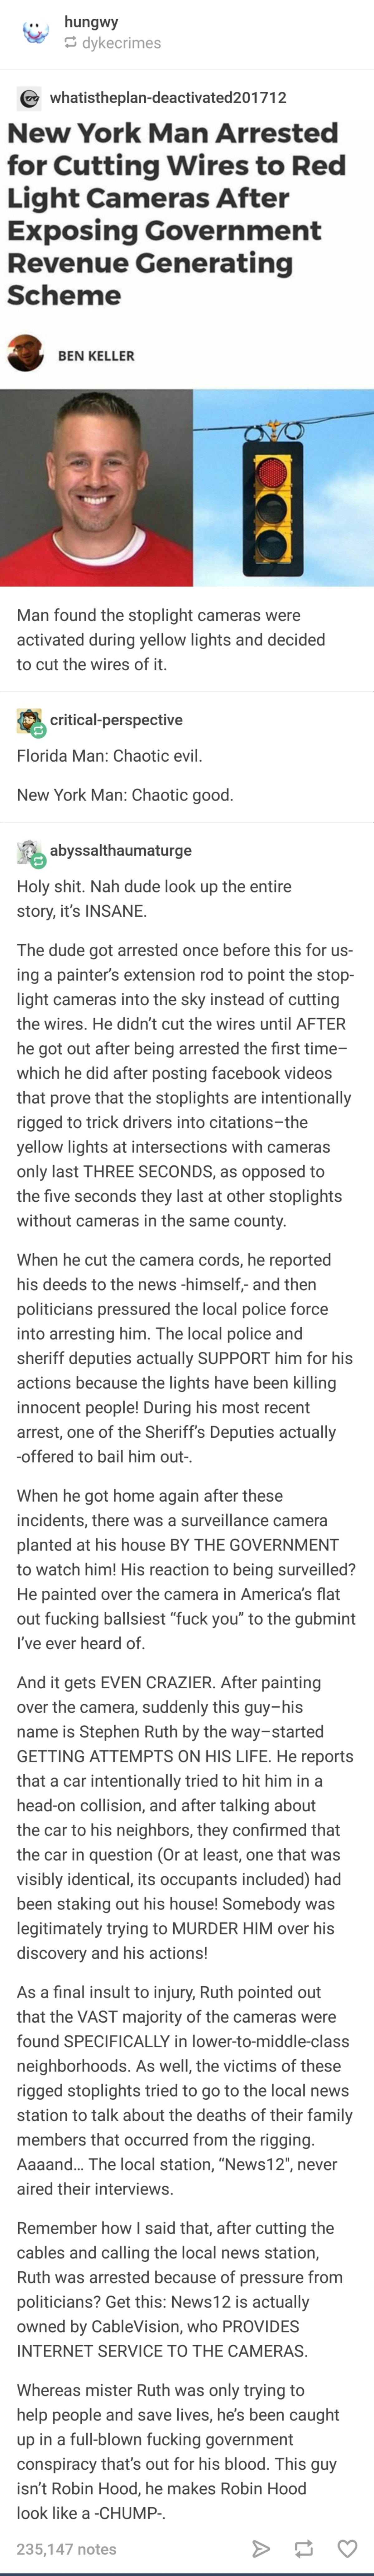 995: The Hero we Need. .. Any conclusion yet!? Is the man still alive?